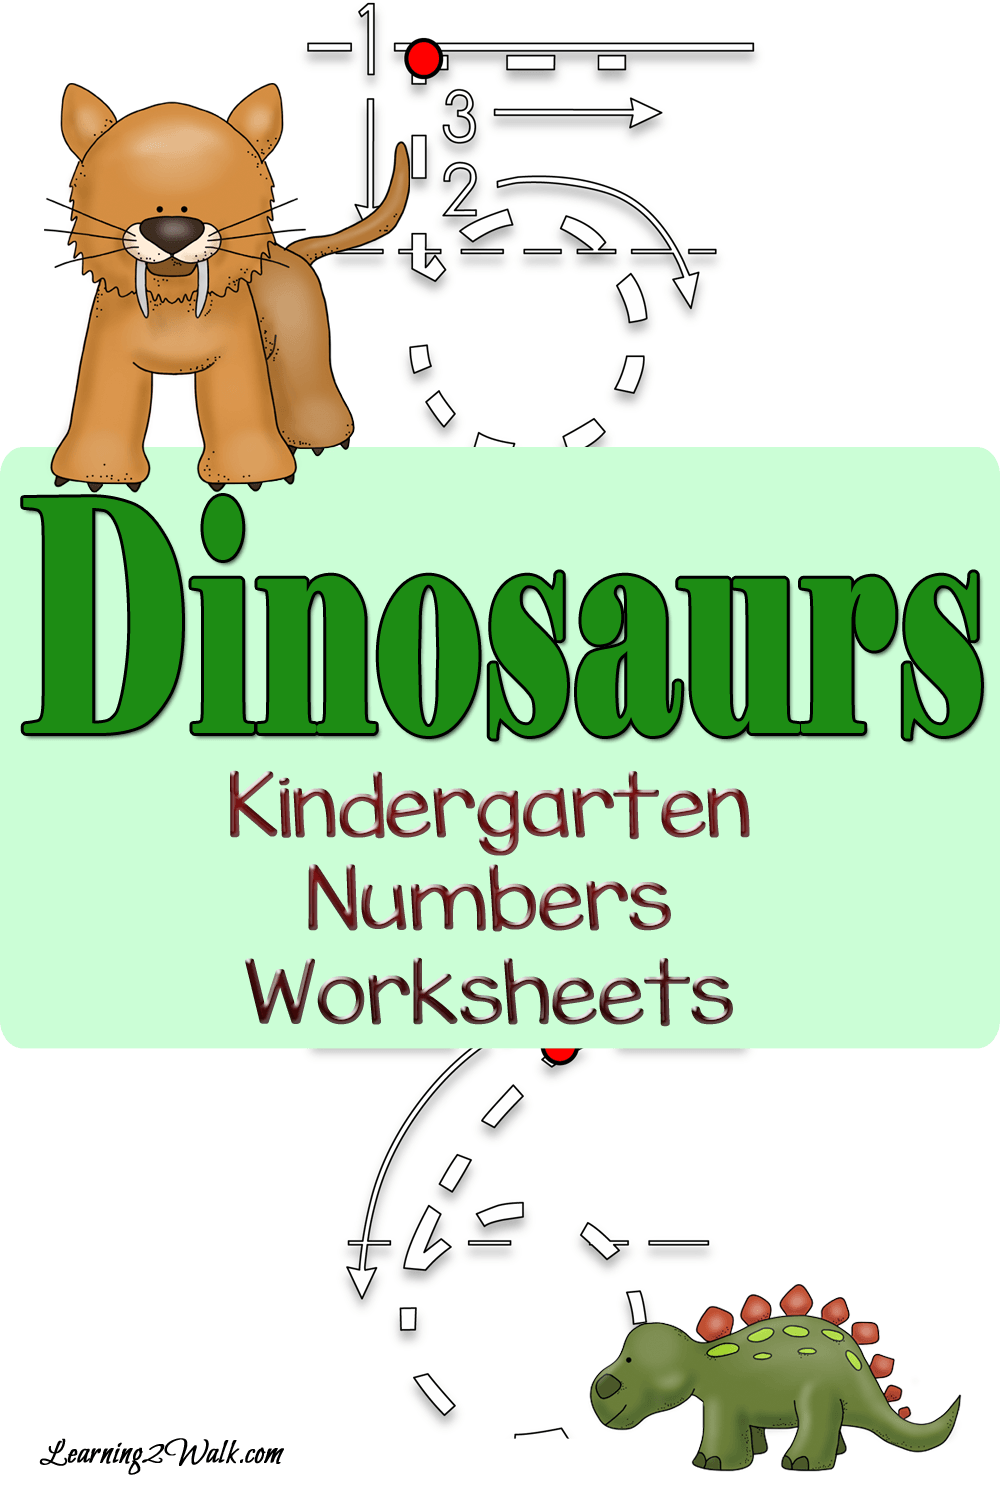 Dinosaur Kindergarten Numbers Worksheets | Number worksheets ...